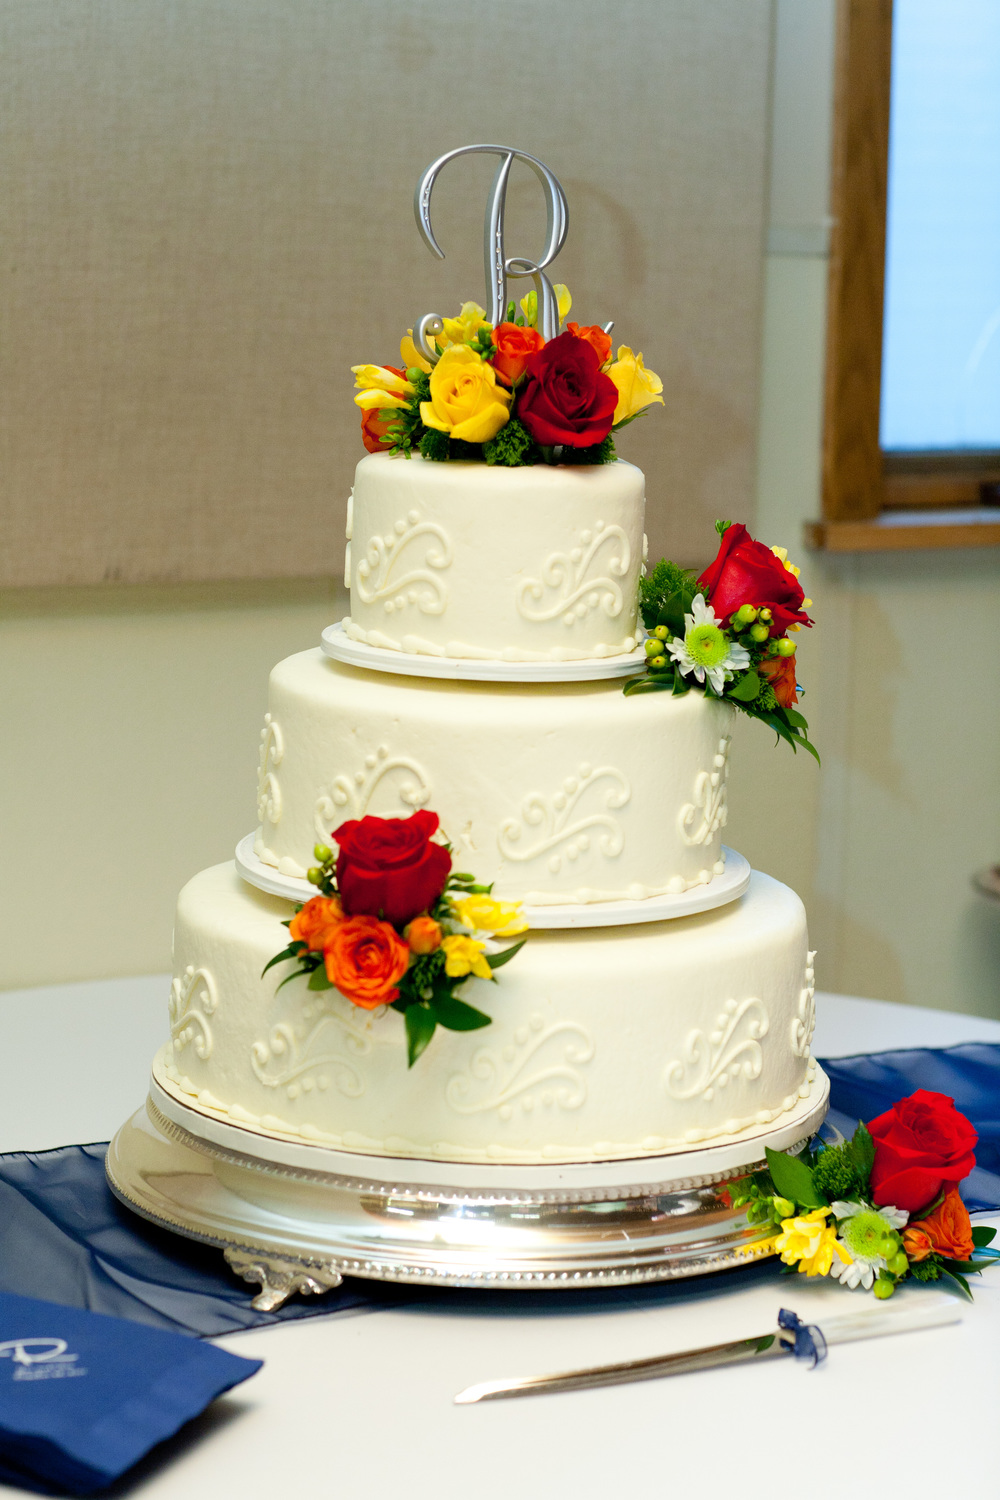 12. Fall color cake decoration